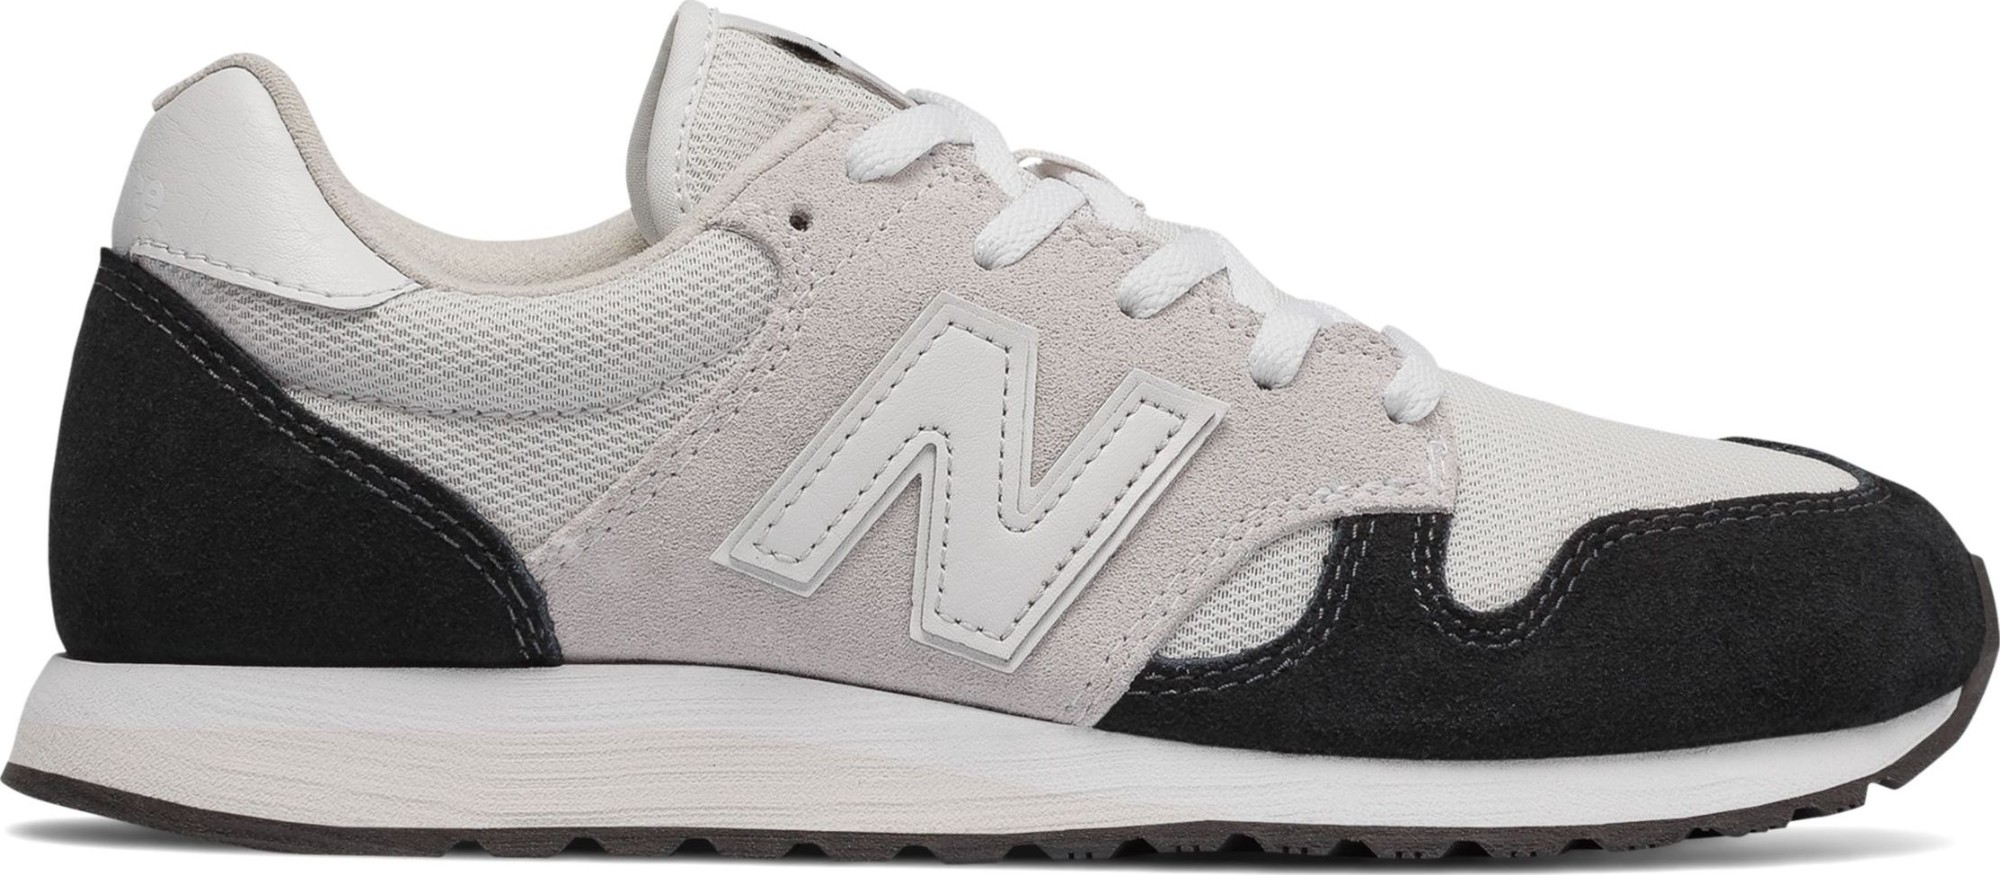 New Balance WL520 Black TB 41